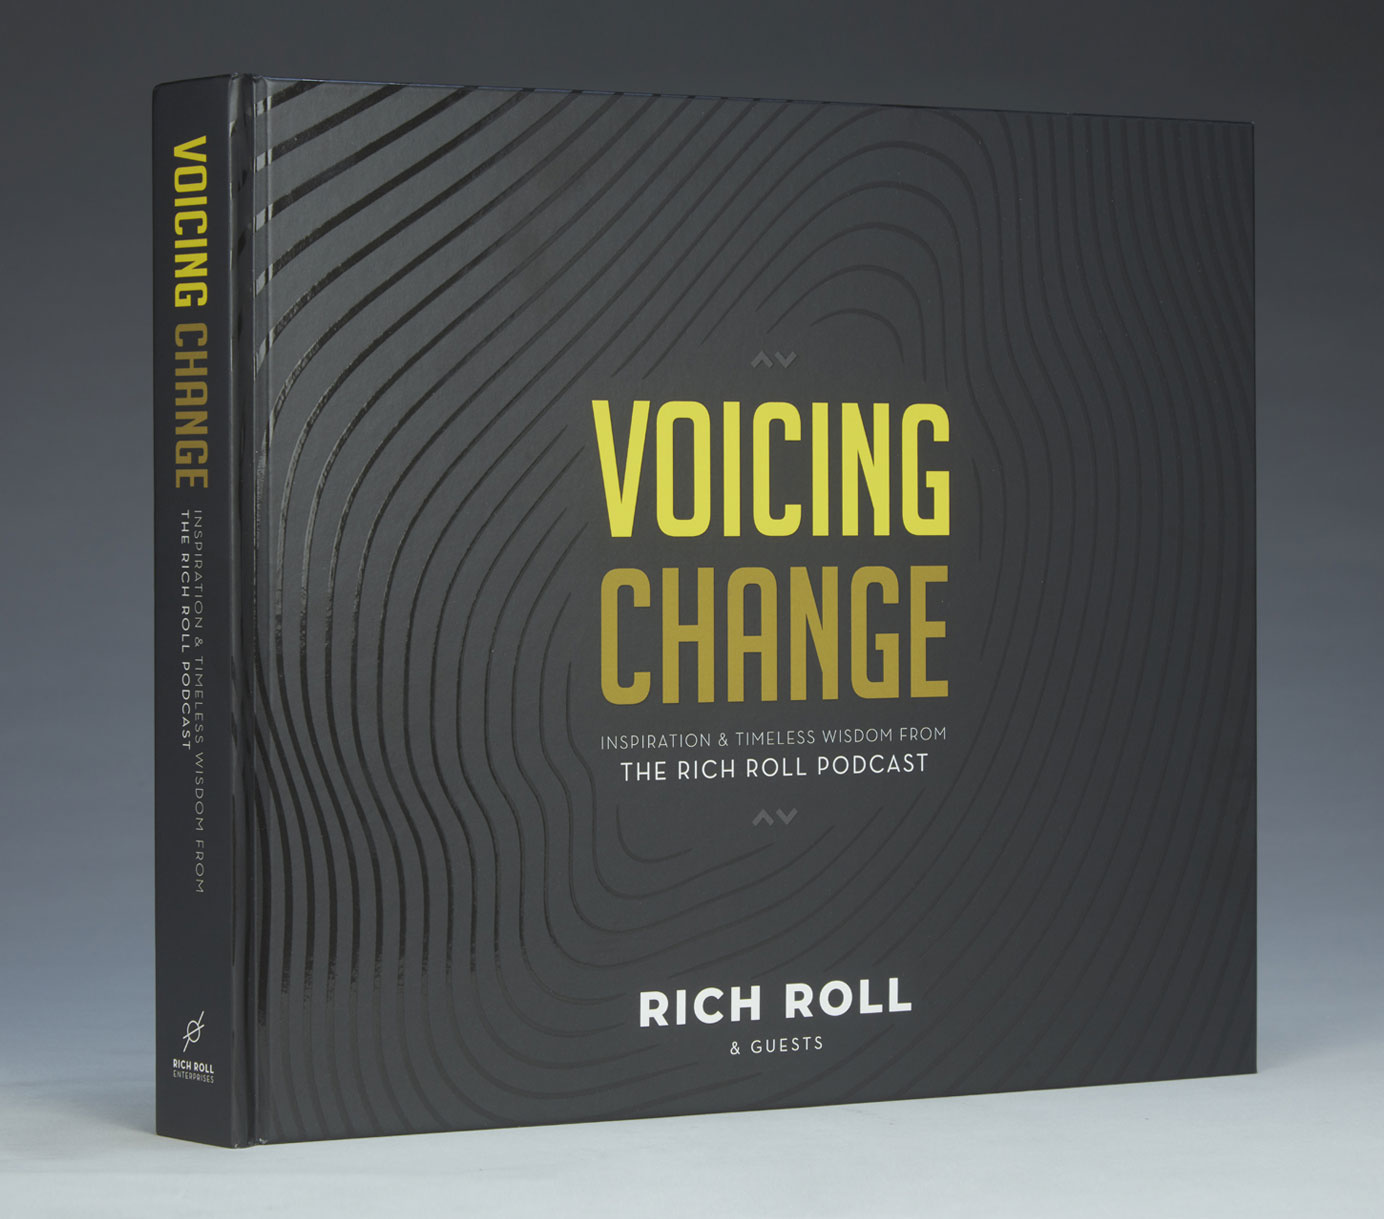 Rich Roll Voicing Change by Rich Roll